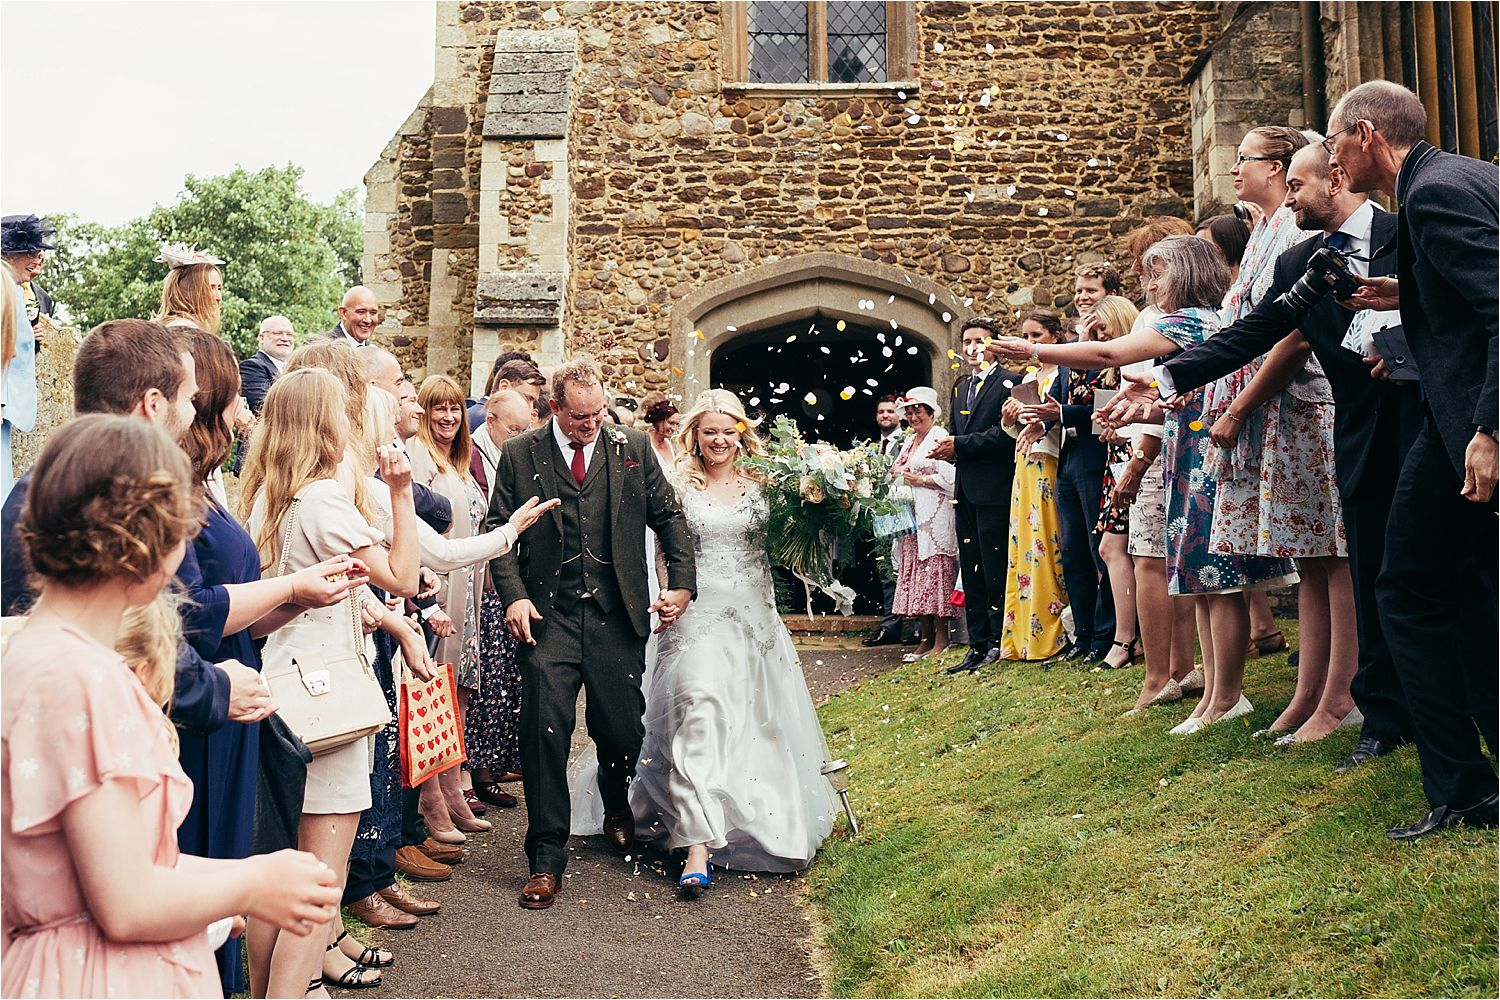 Confetti being throw at wedding in Bedfordshire